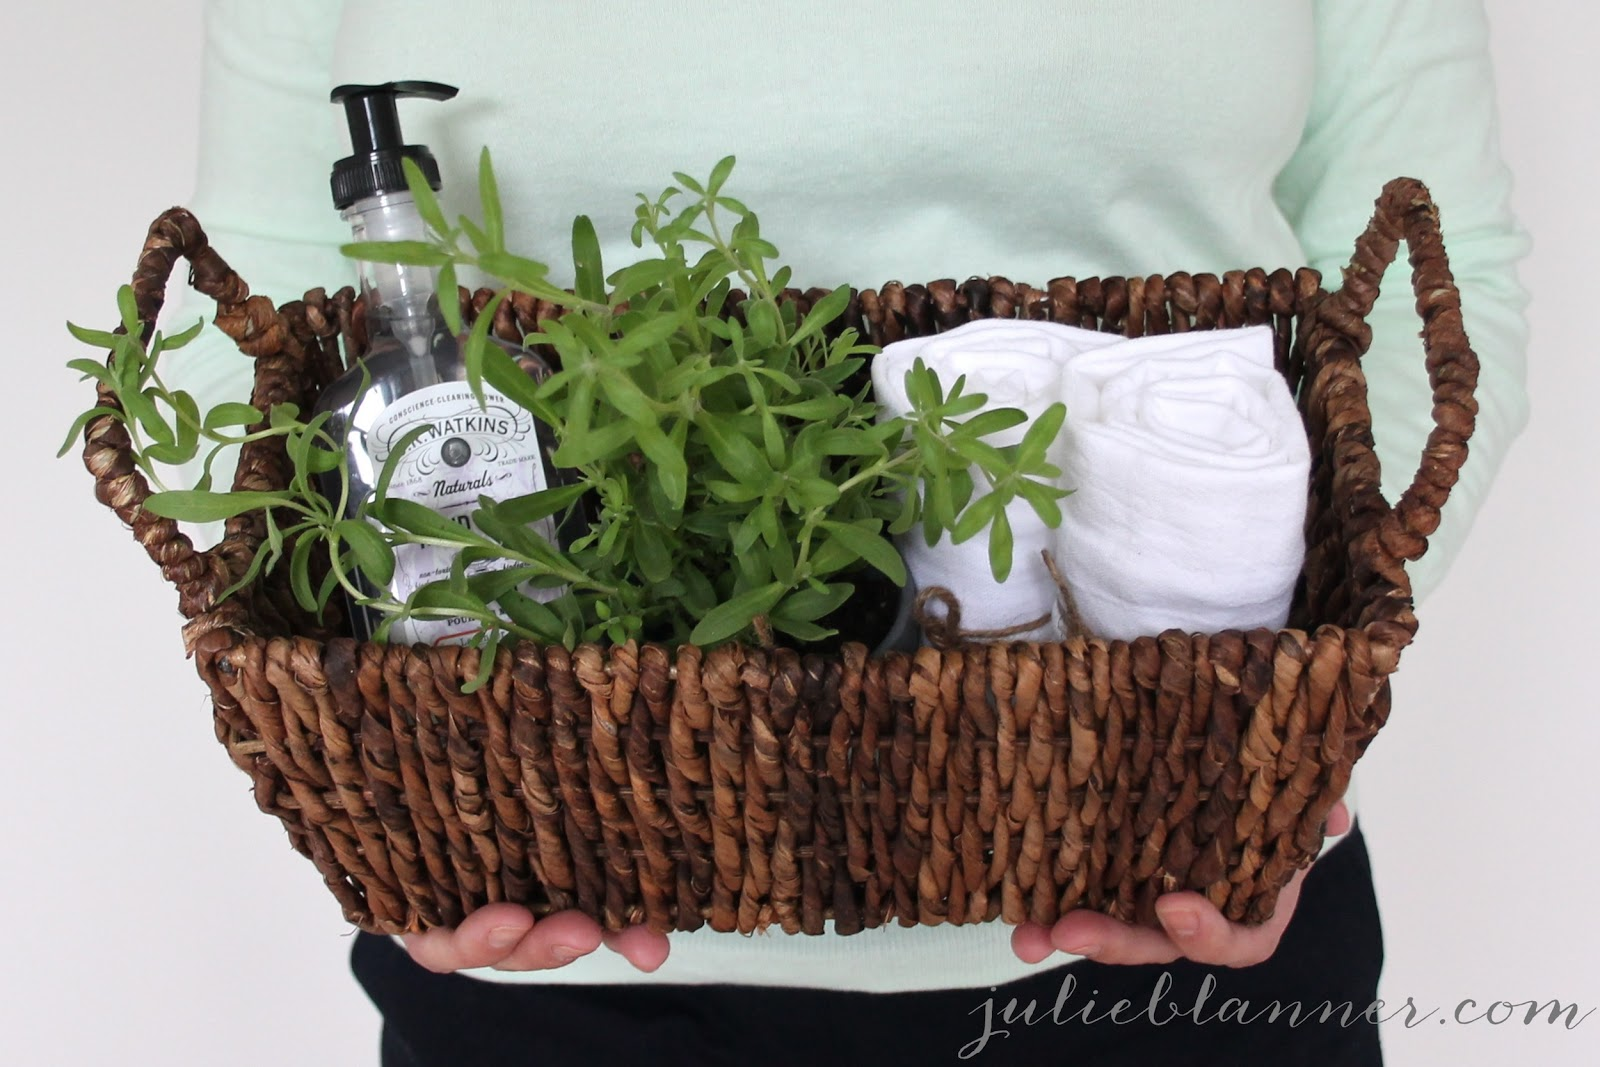 What Is A Nice Housewarming Gift Homemade Housewarming Gift Julie Blanner